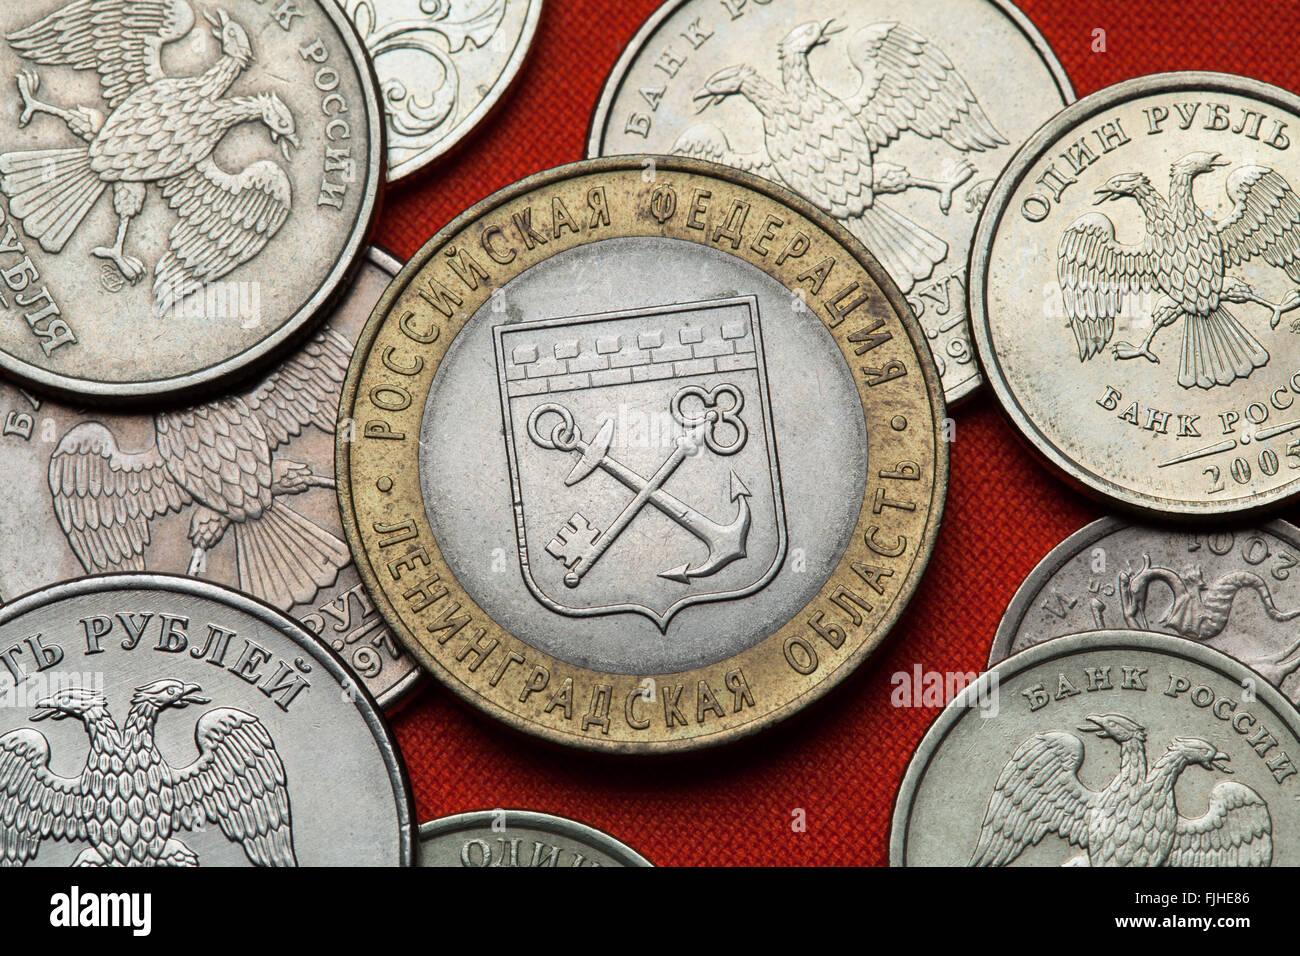 Coins of Russia. Coat of arms of the Leningrad Oblast depicted in the Russian commemorative 10 ruble coin. - Stock Image